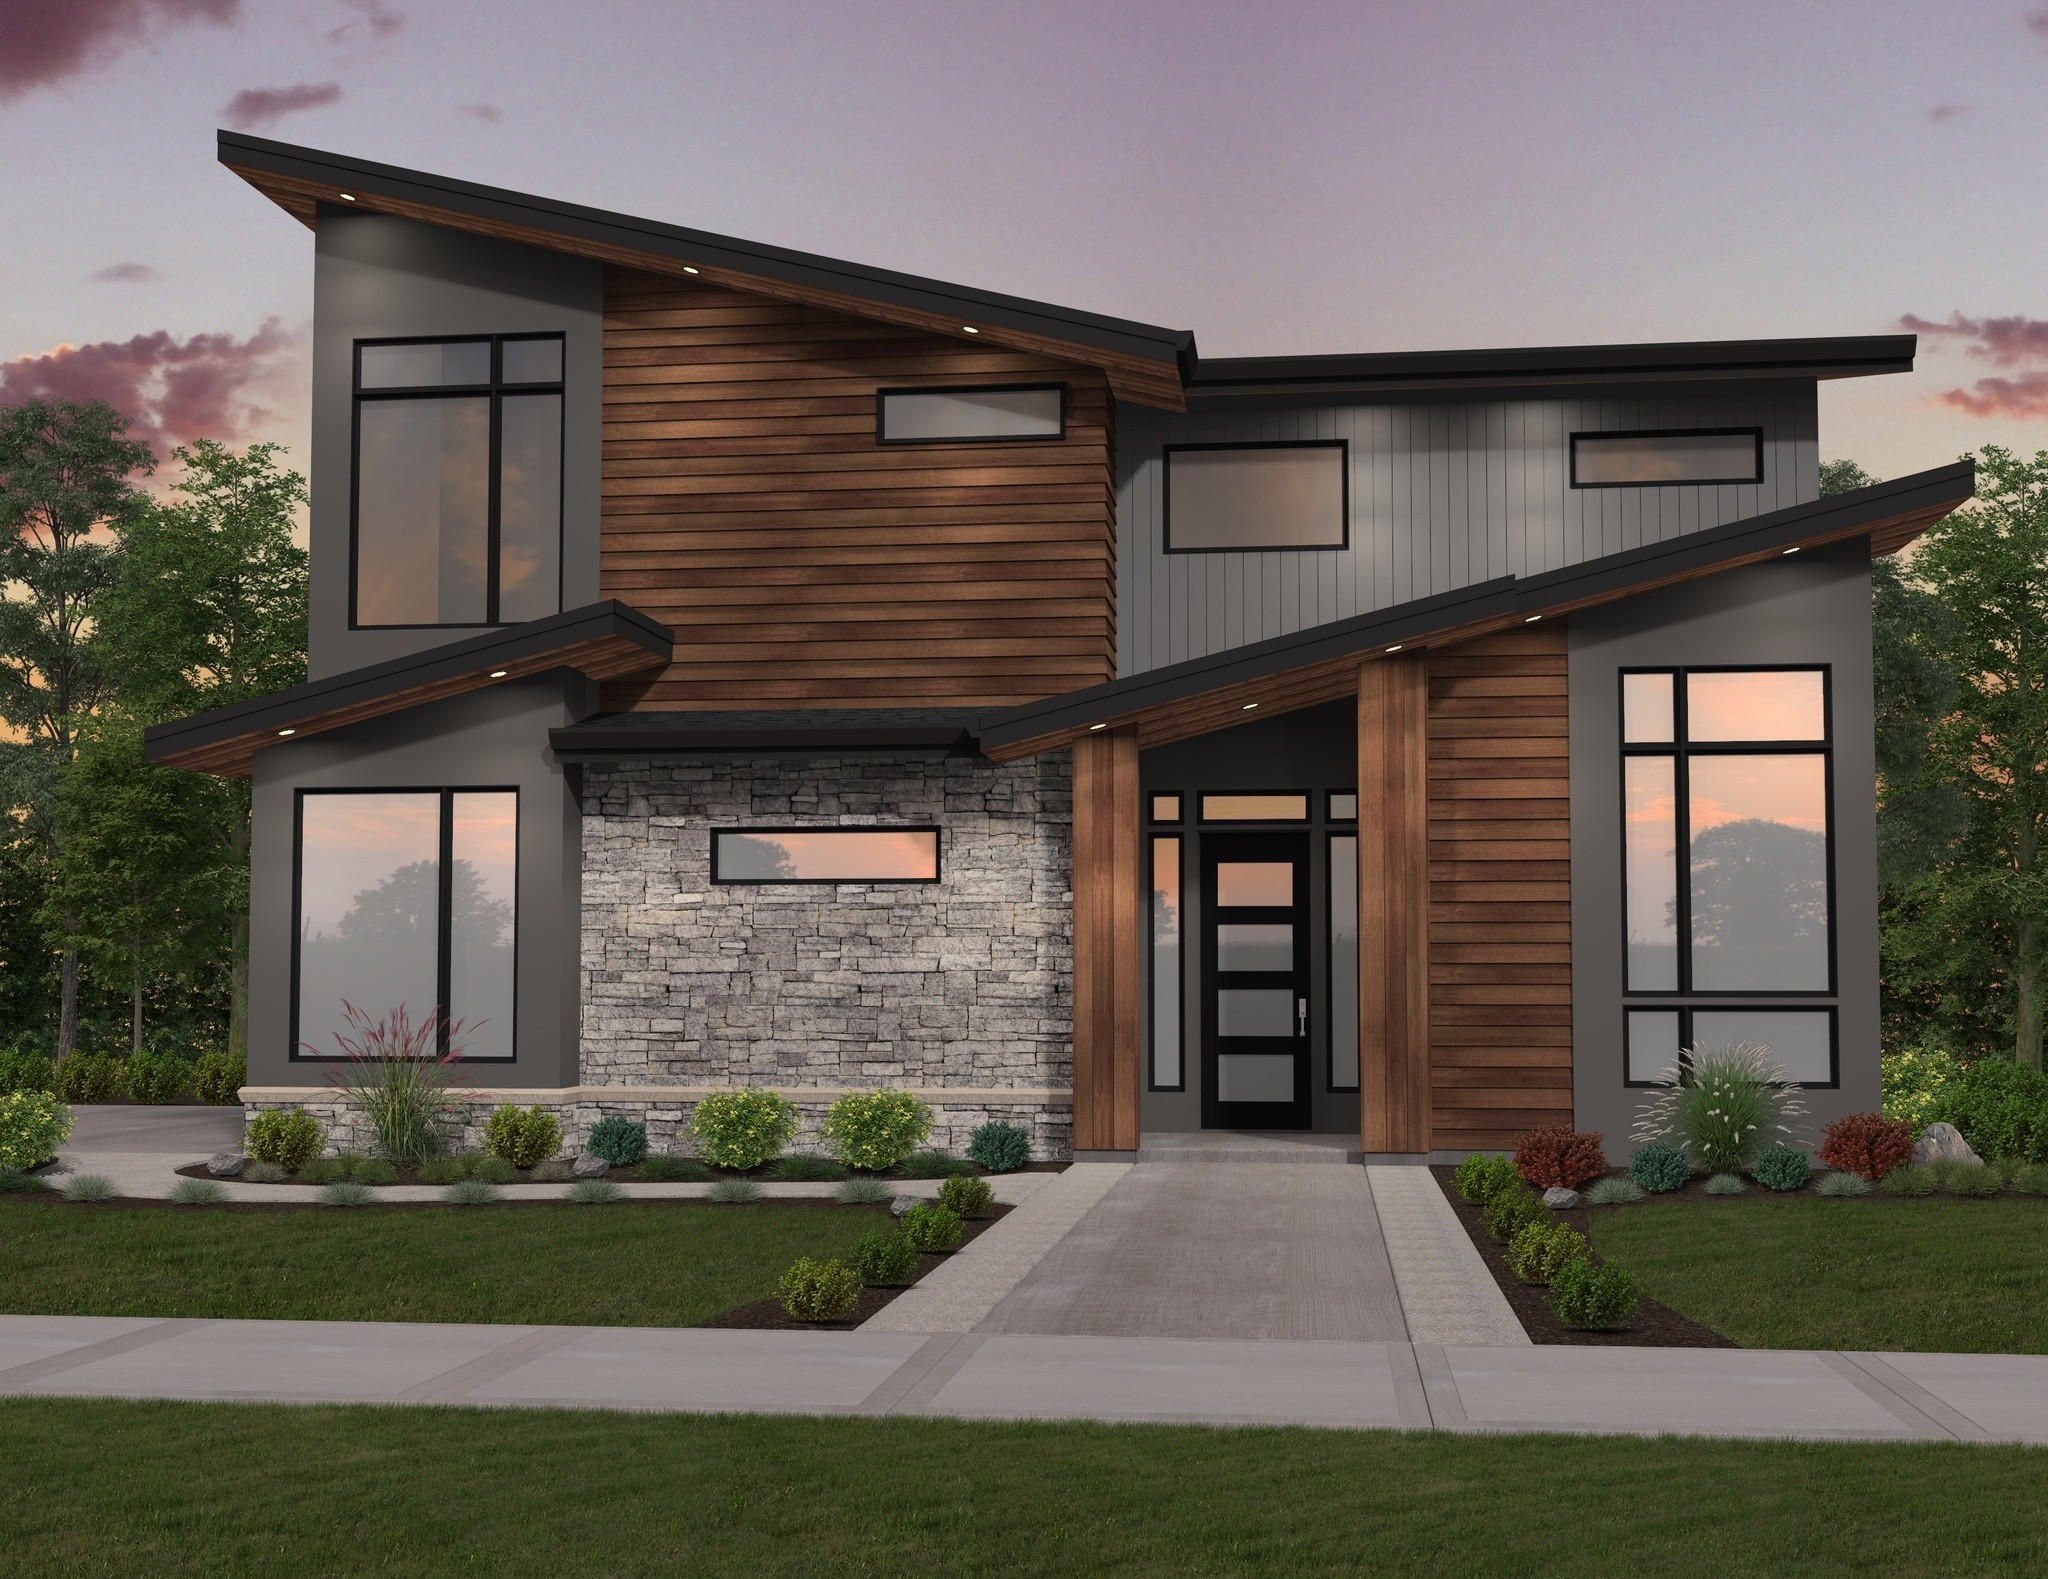 Ozark House Plan | Two-Story Modern Home Design by Mark ...